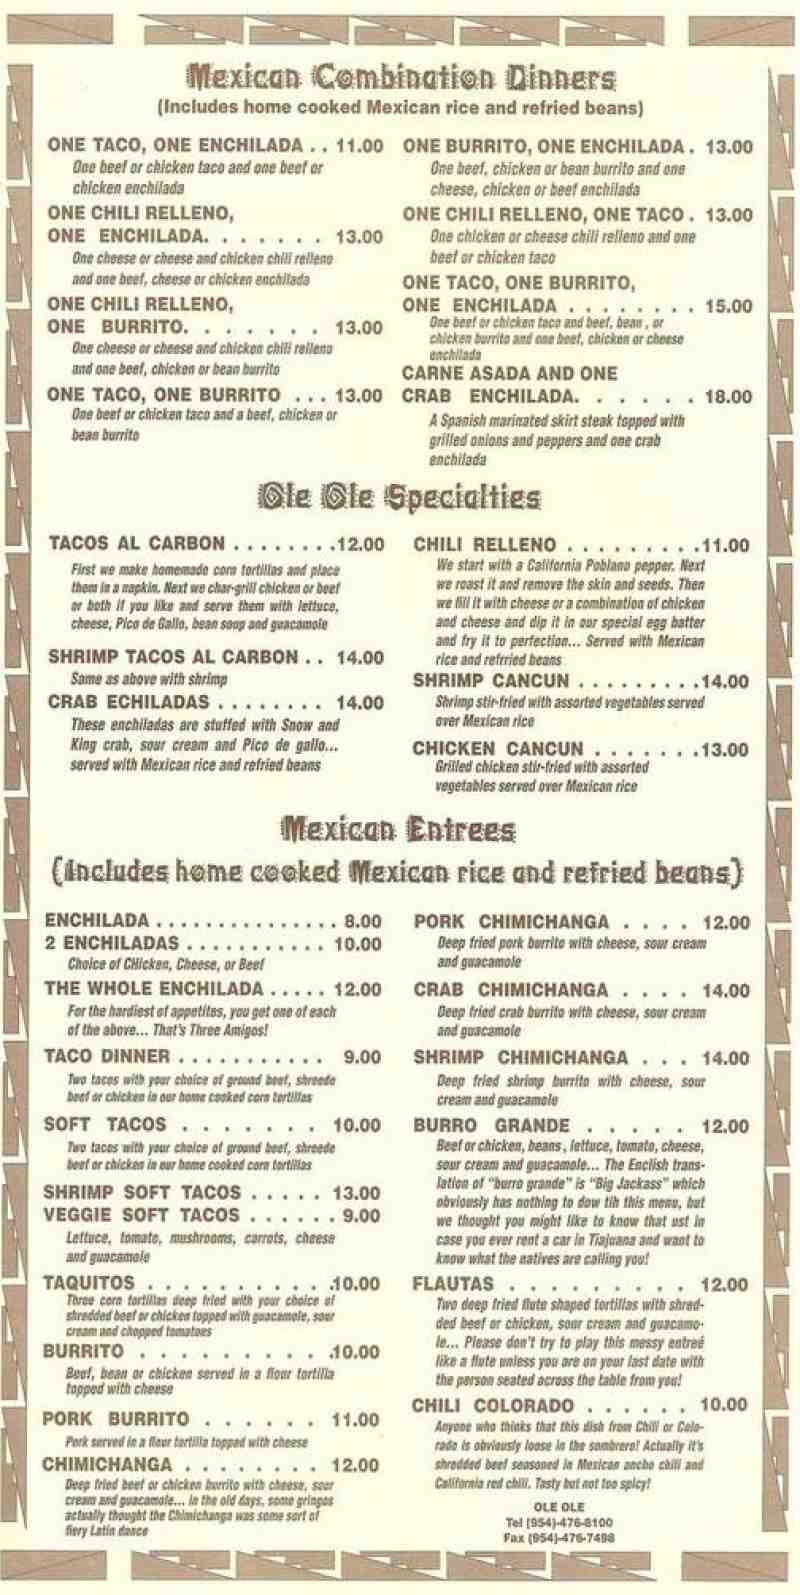 Cafe Ole Menu With Prices